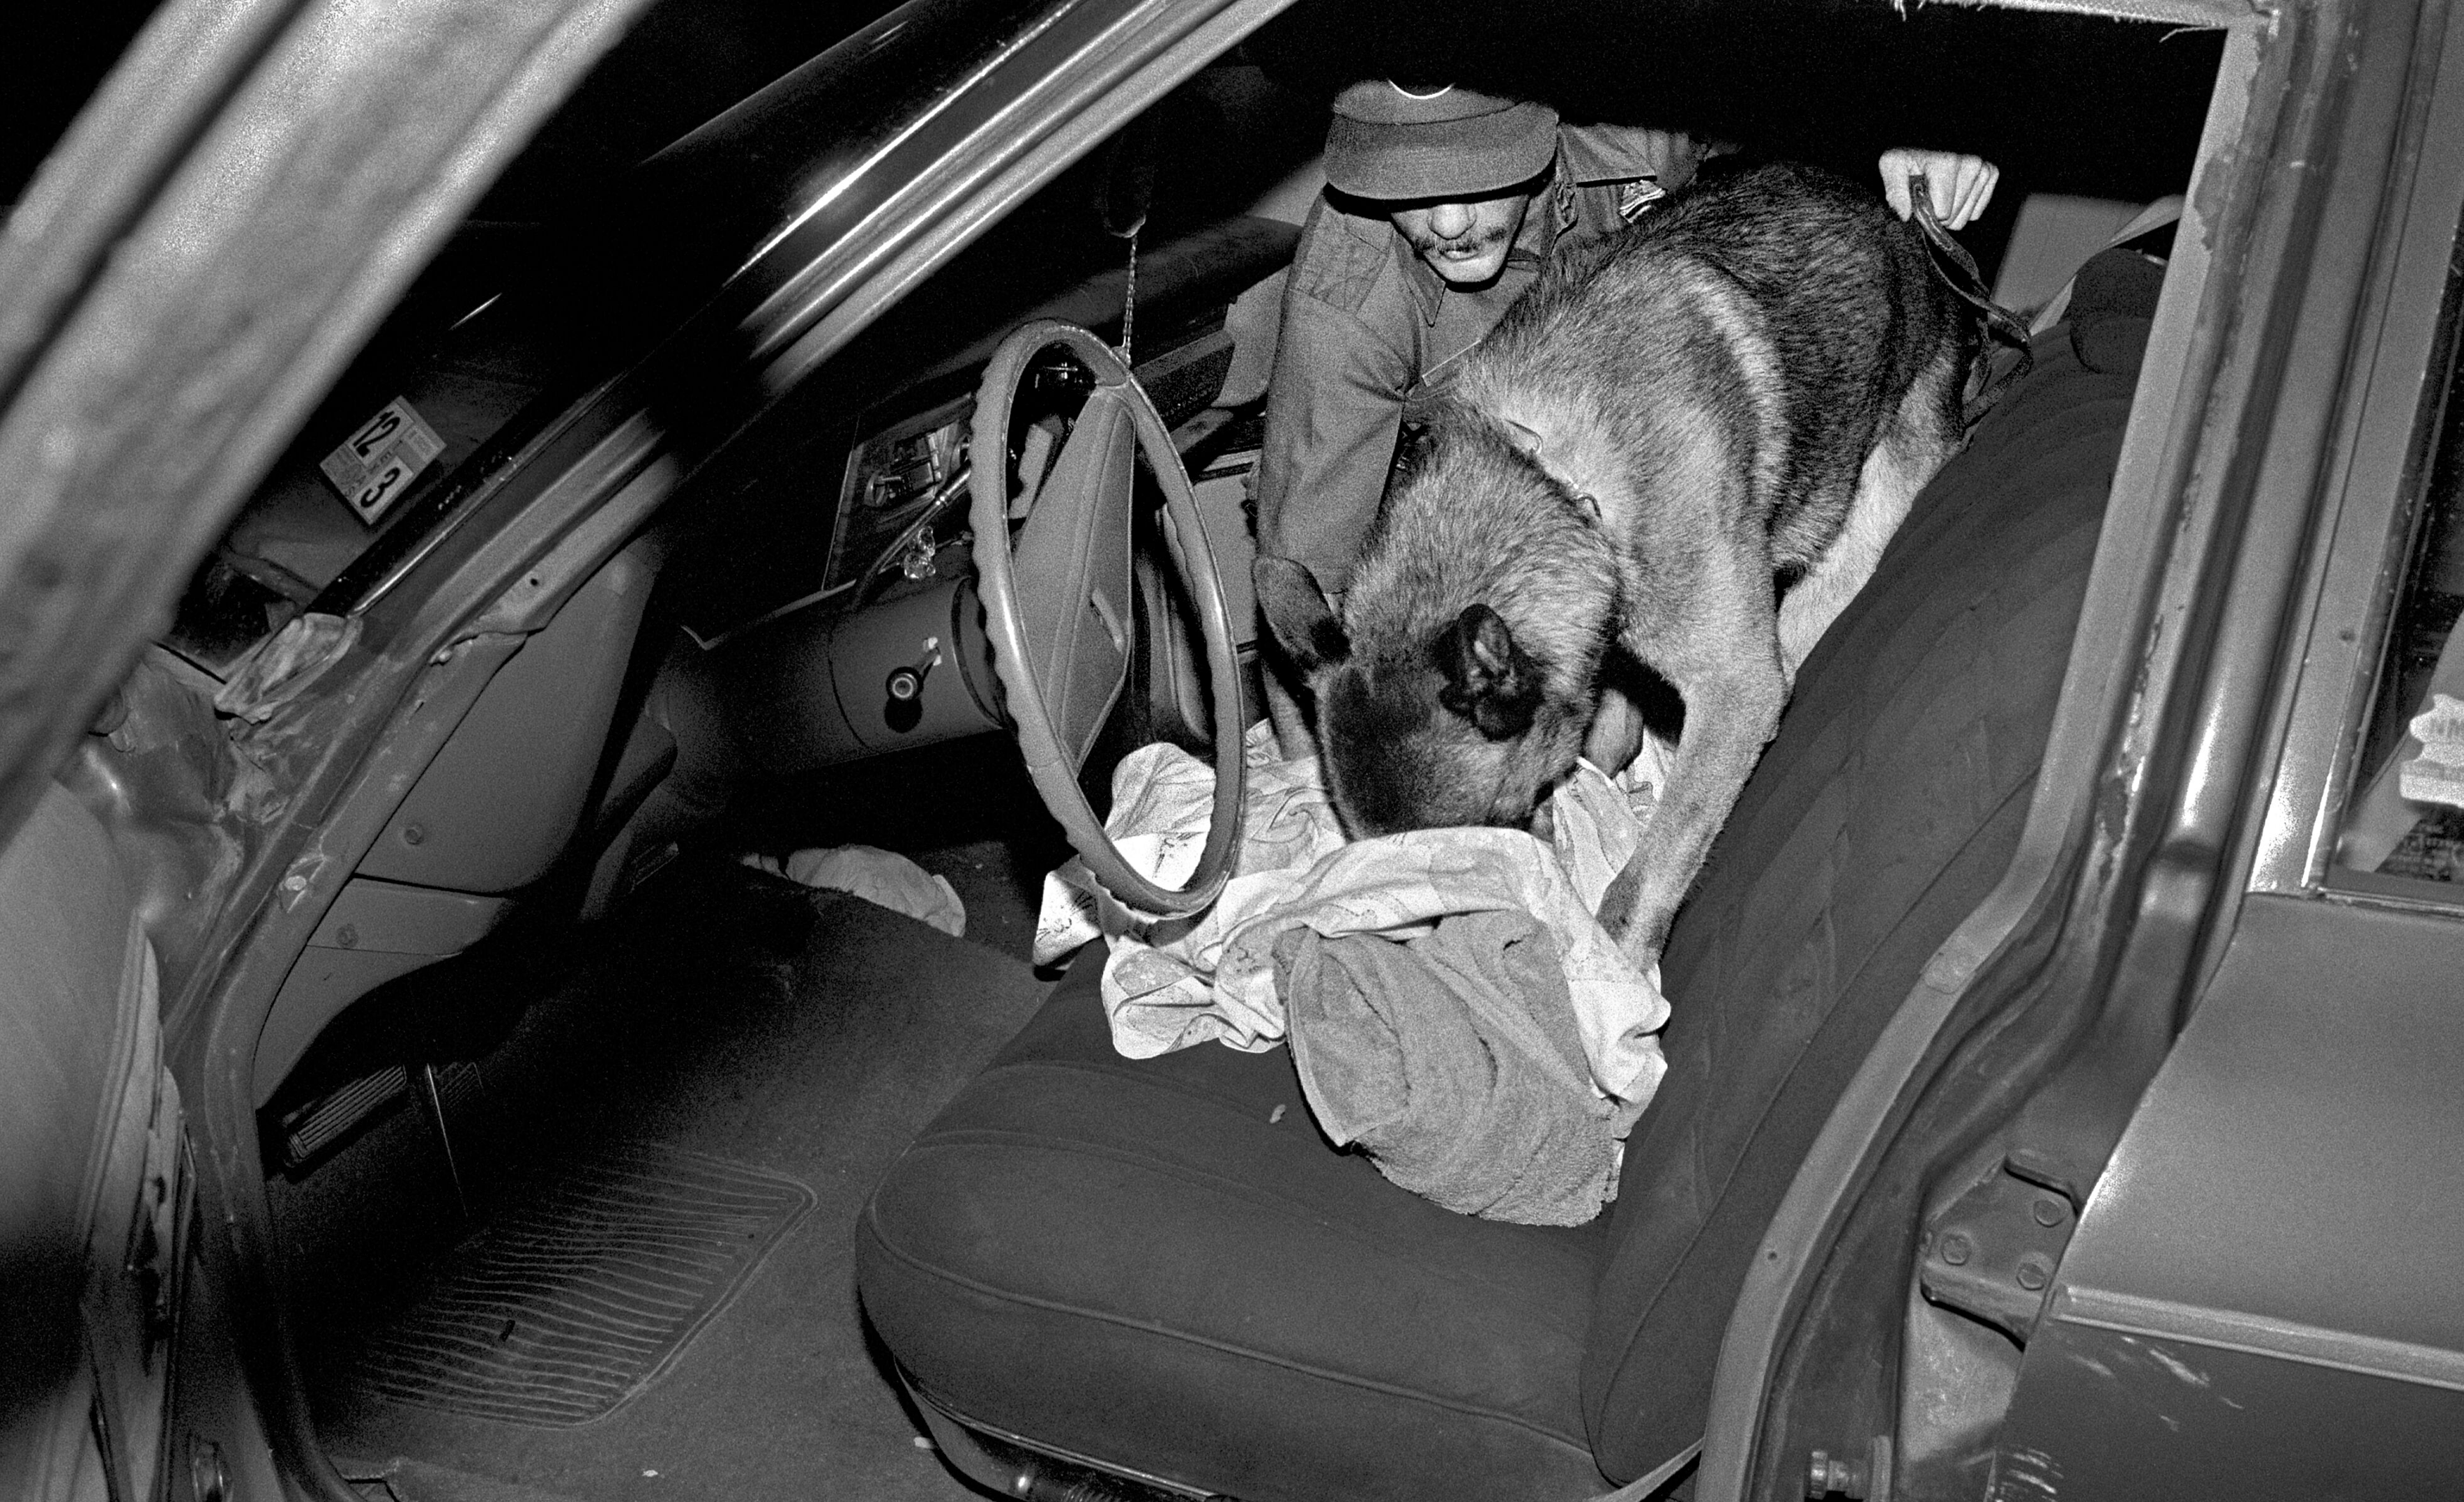 Border Patrol Dog Inspecting Car, Laredo, Texas, 1994